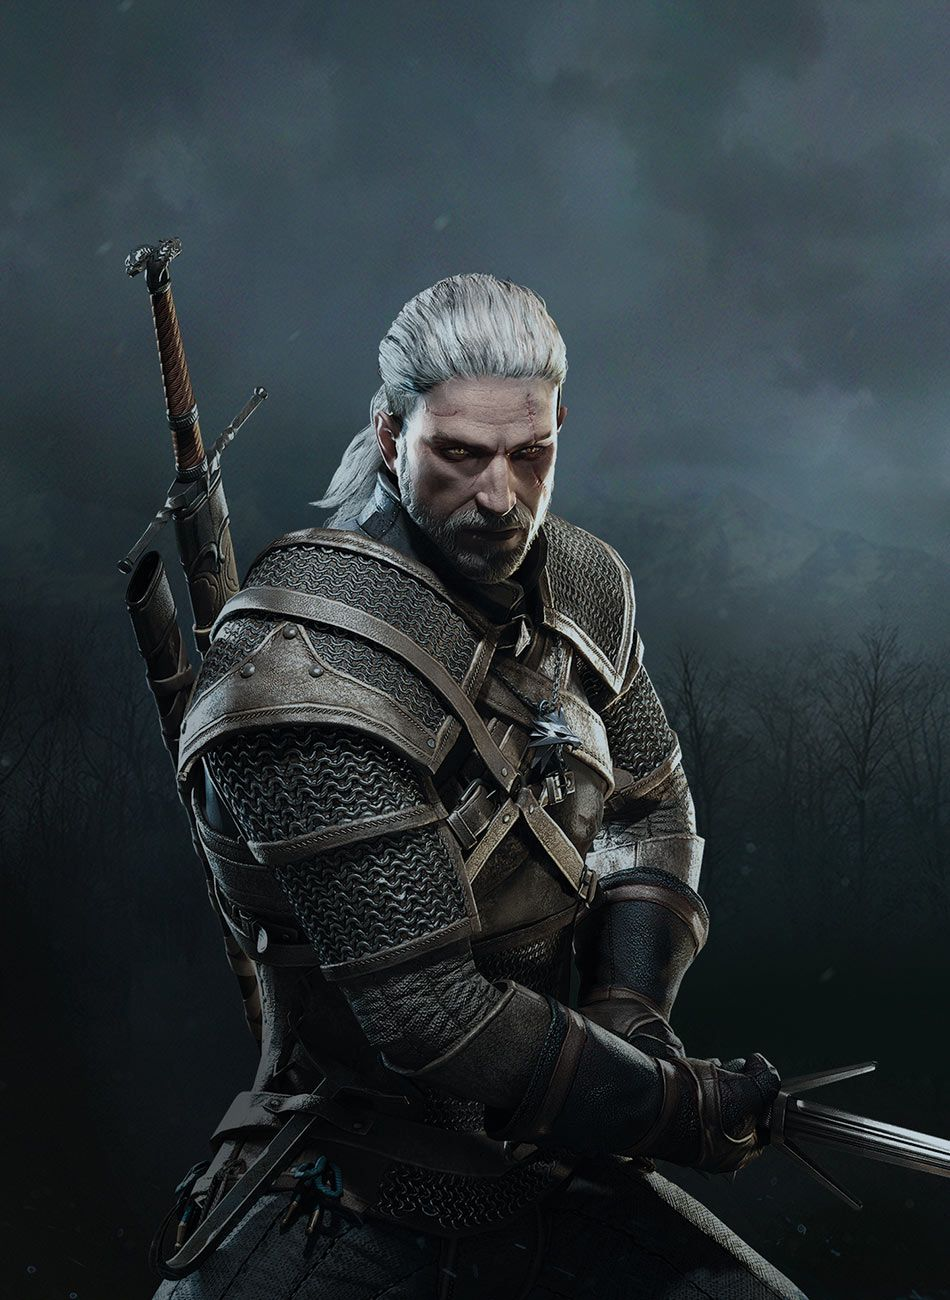 Geralt Offensive Stance Crop Characters Art The Witcher 3 Wild Hunt The Witcher Books The Witcher 3 The Witcher